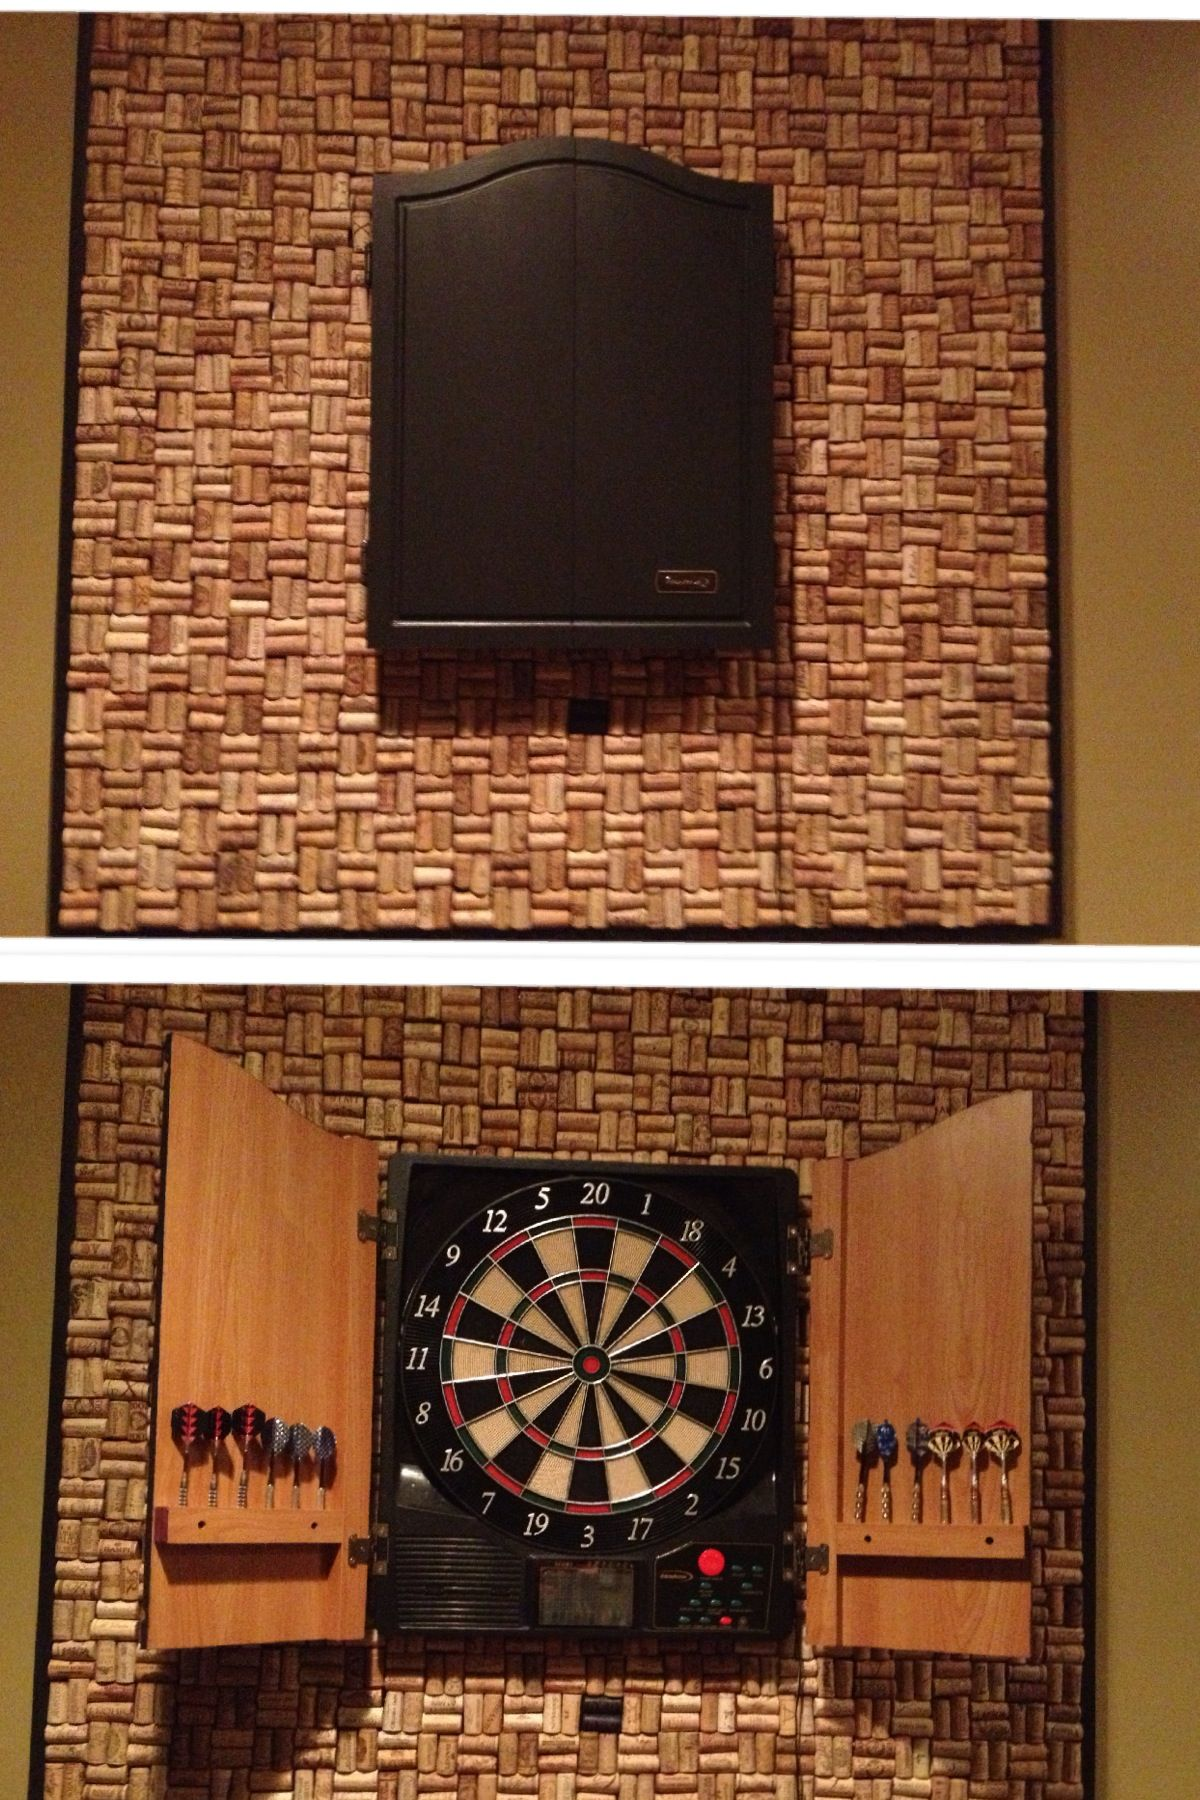 Diy Dart Board Surround Made From Wine Corks For Those Moments You Cannot Seem To Hit The Target No More Holes In Walls